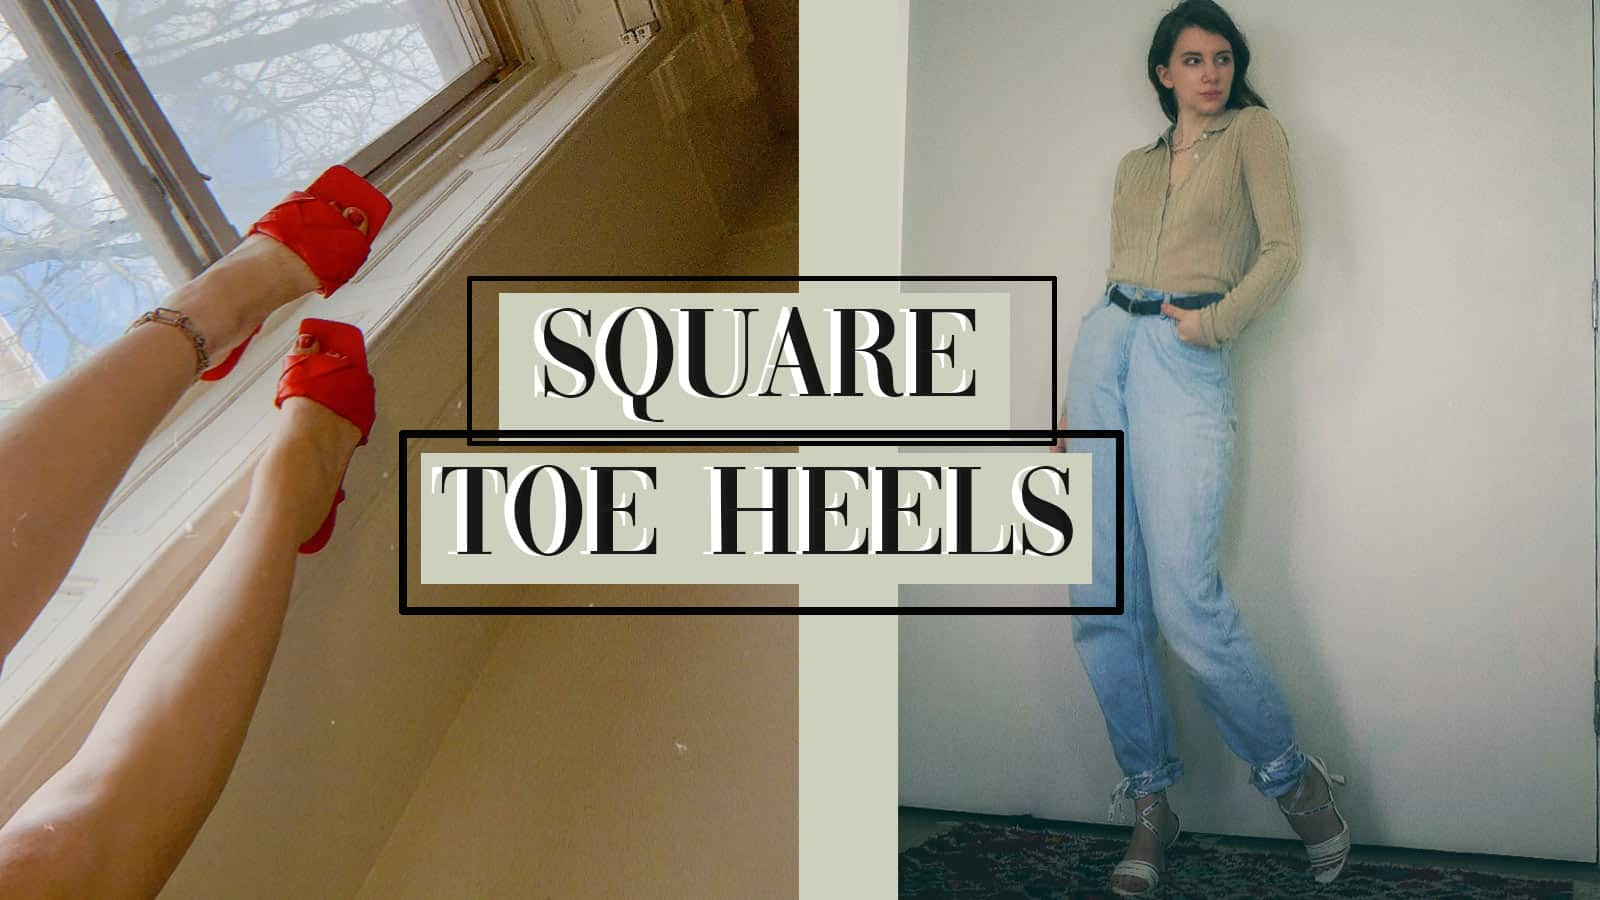 Square-toe heels are still trending, here's what you need to know